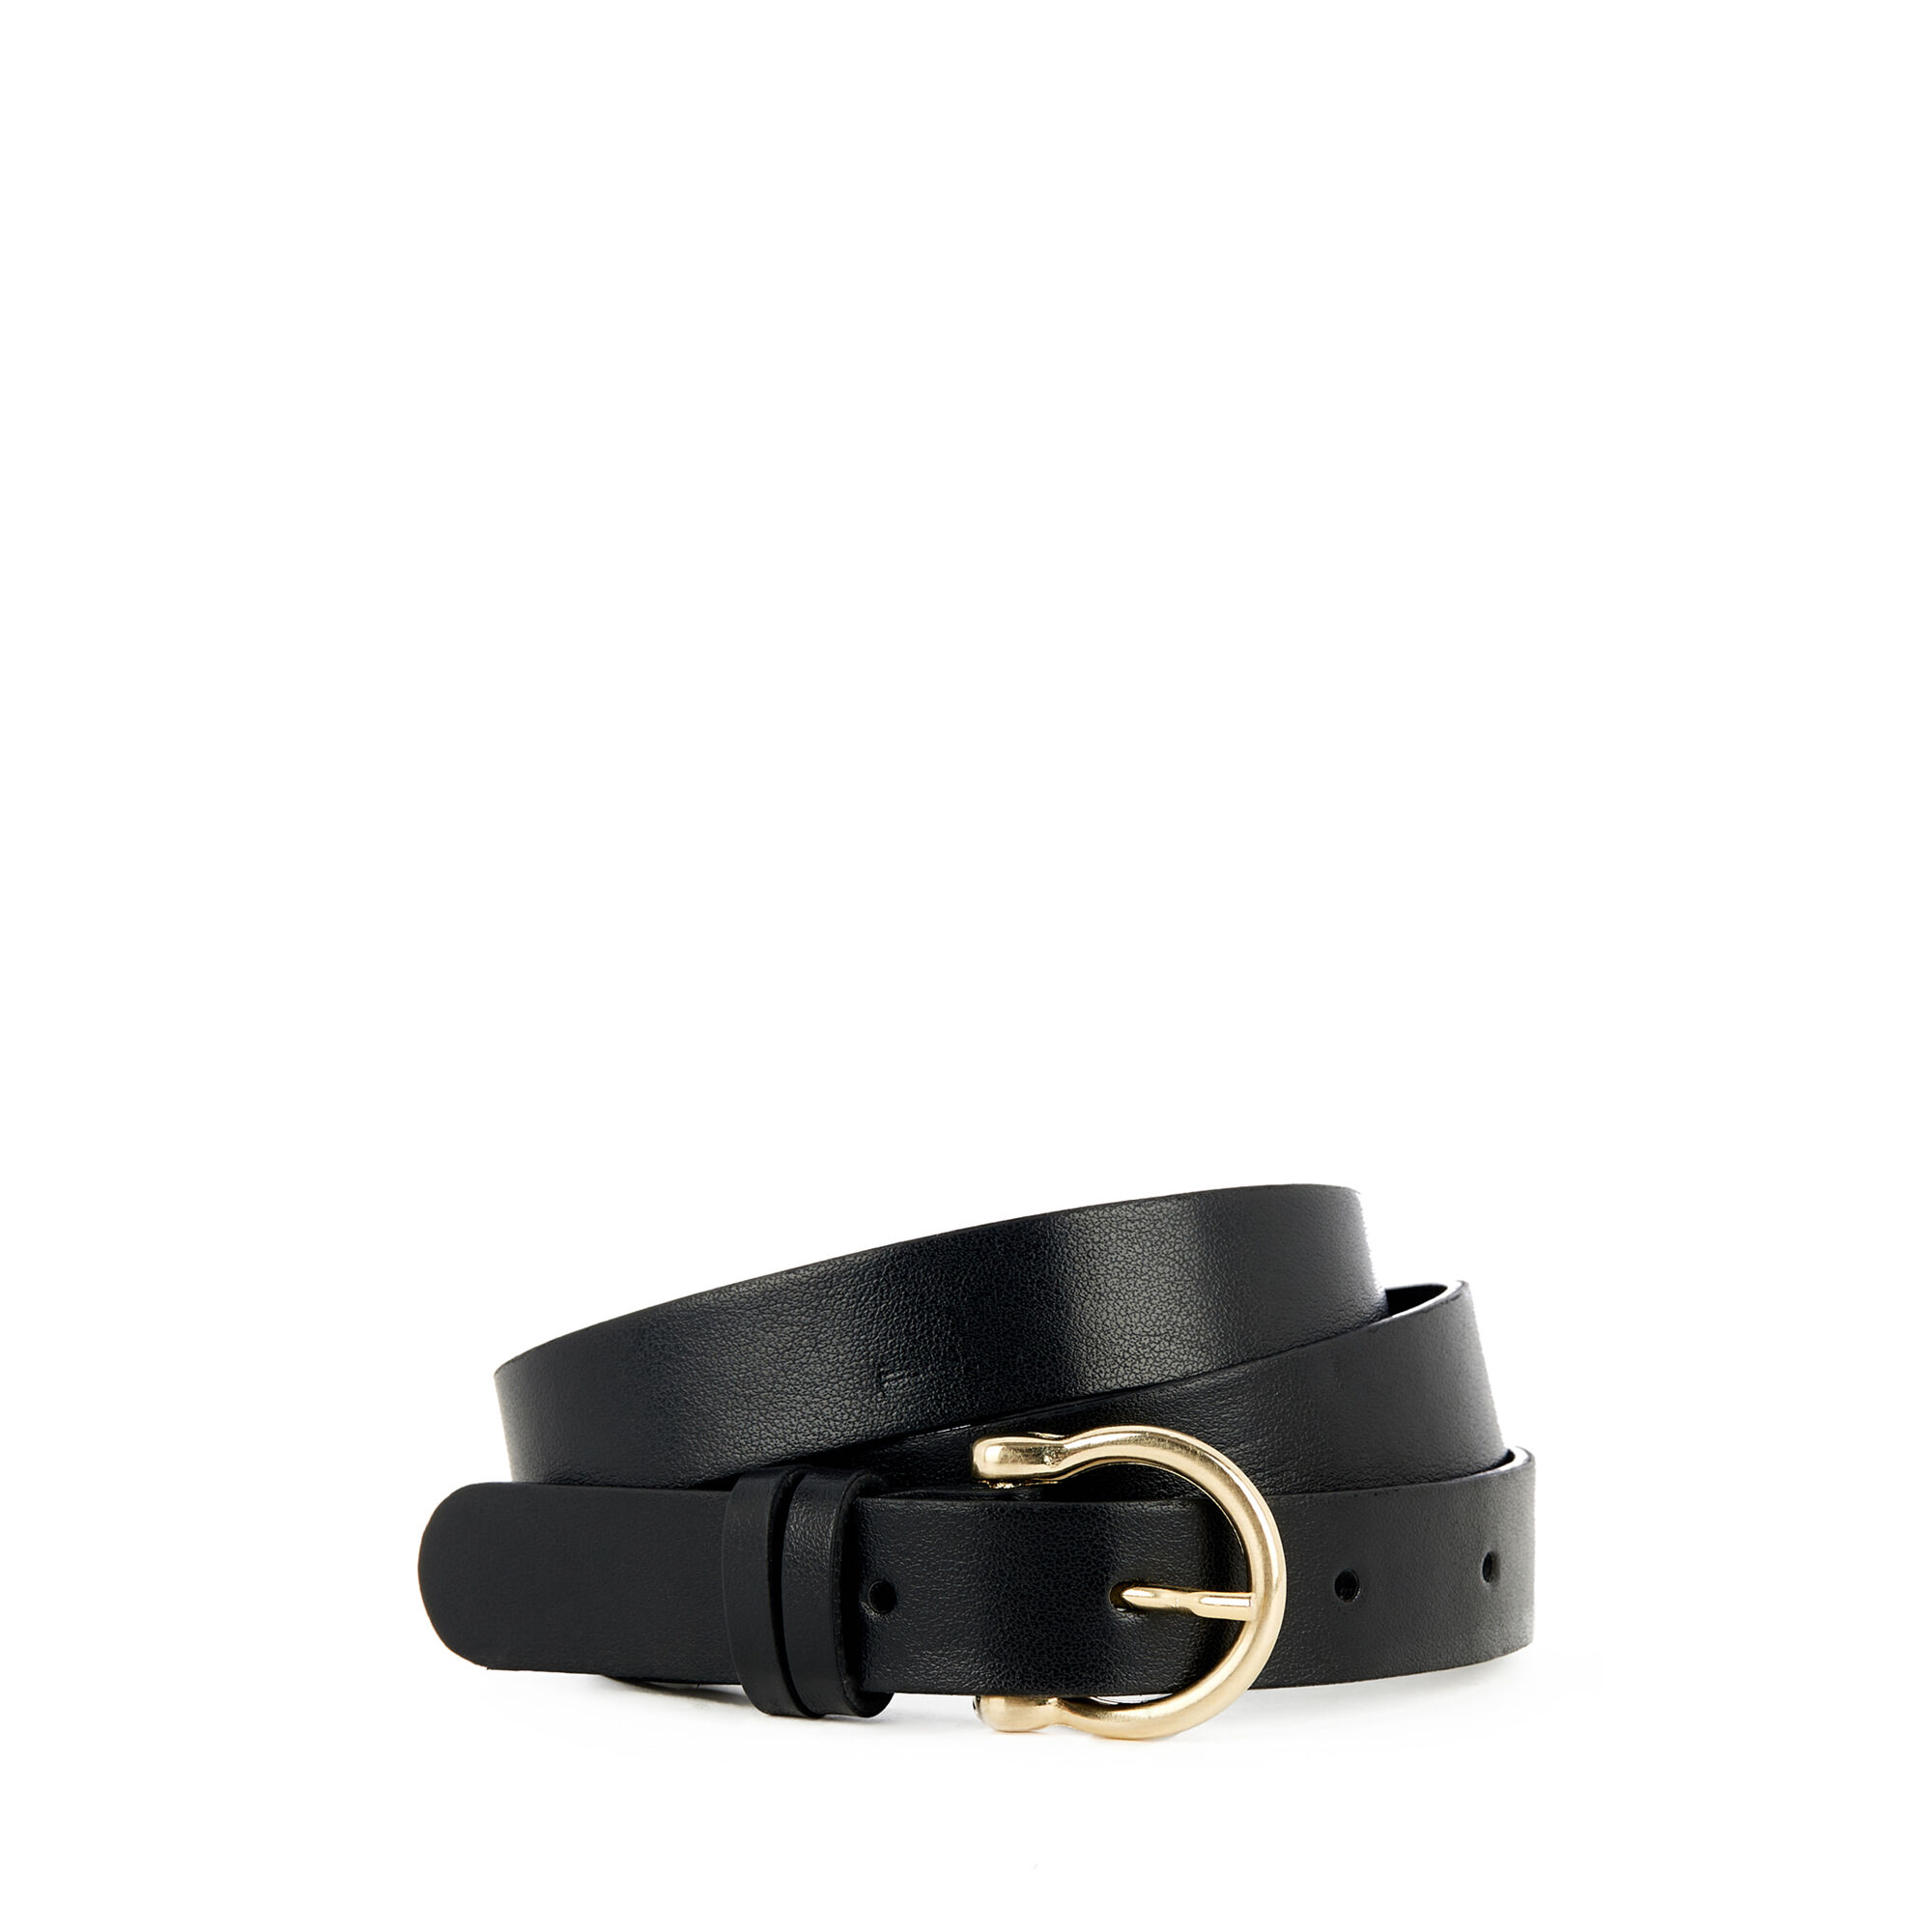 Warehouse, SKINNY METAL KEEPER BELT Black 1